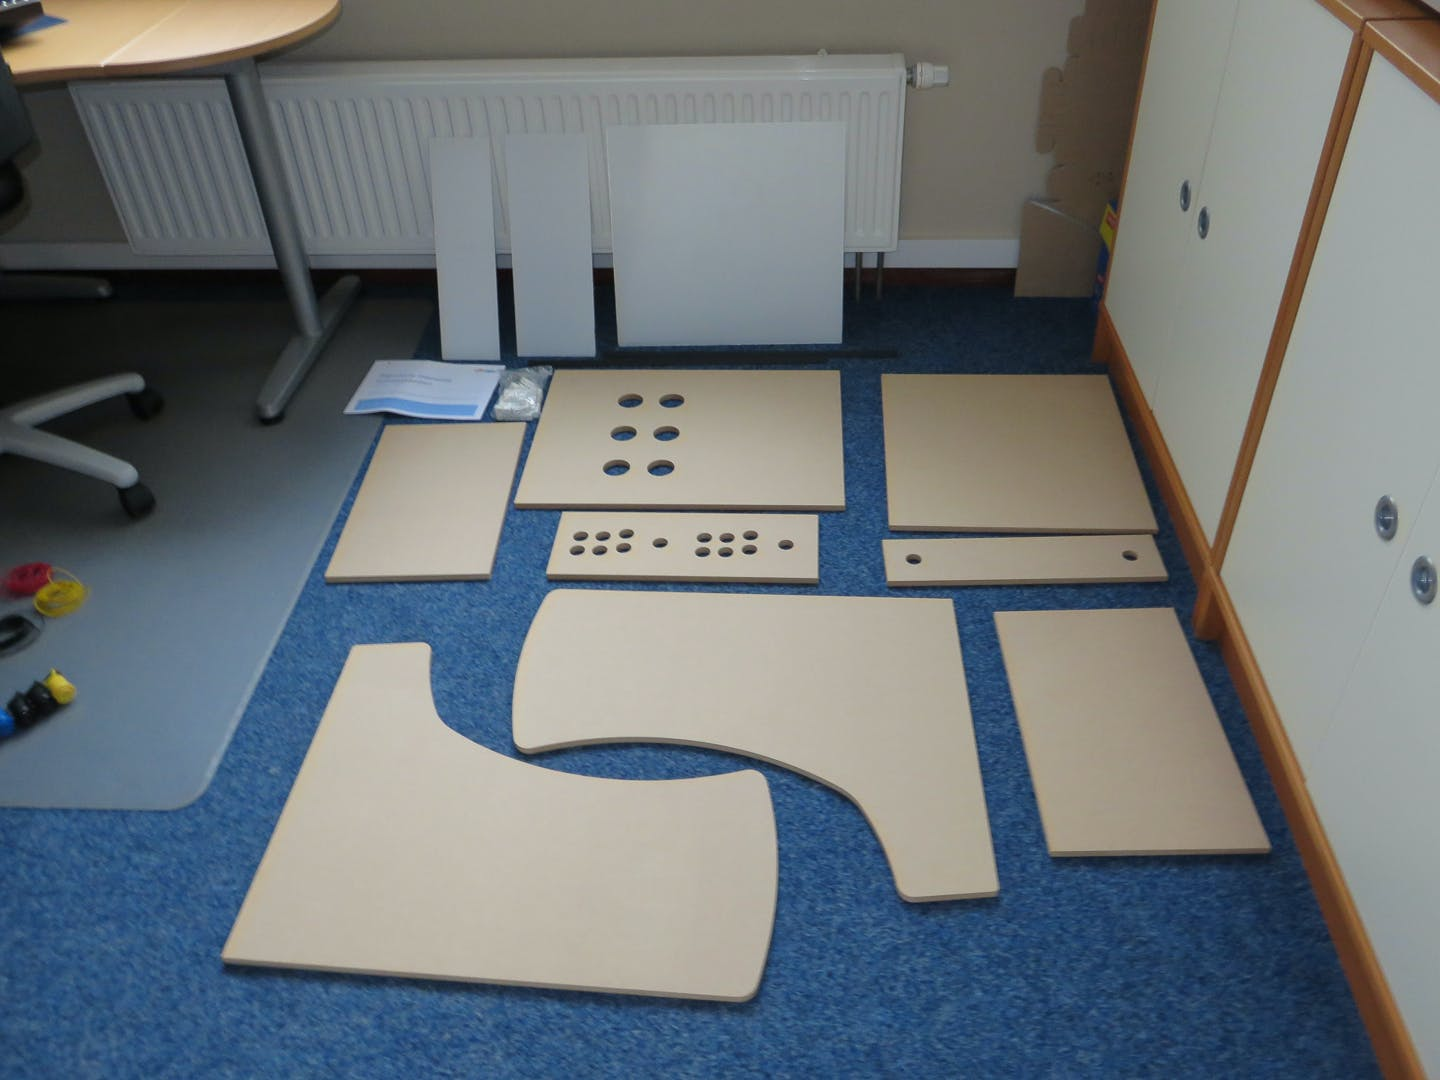 MDF panels and acrylic sheets